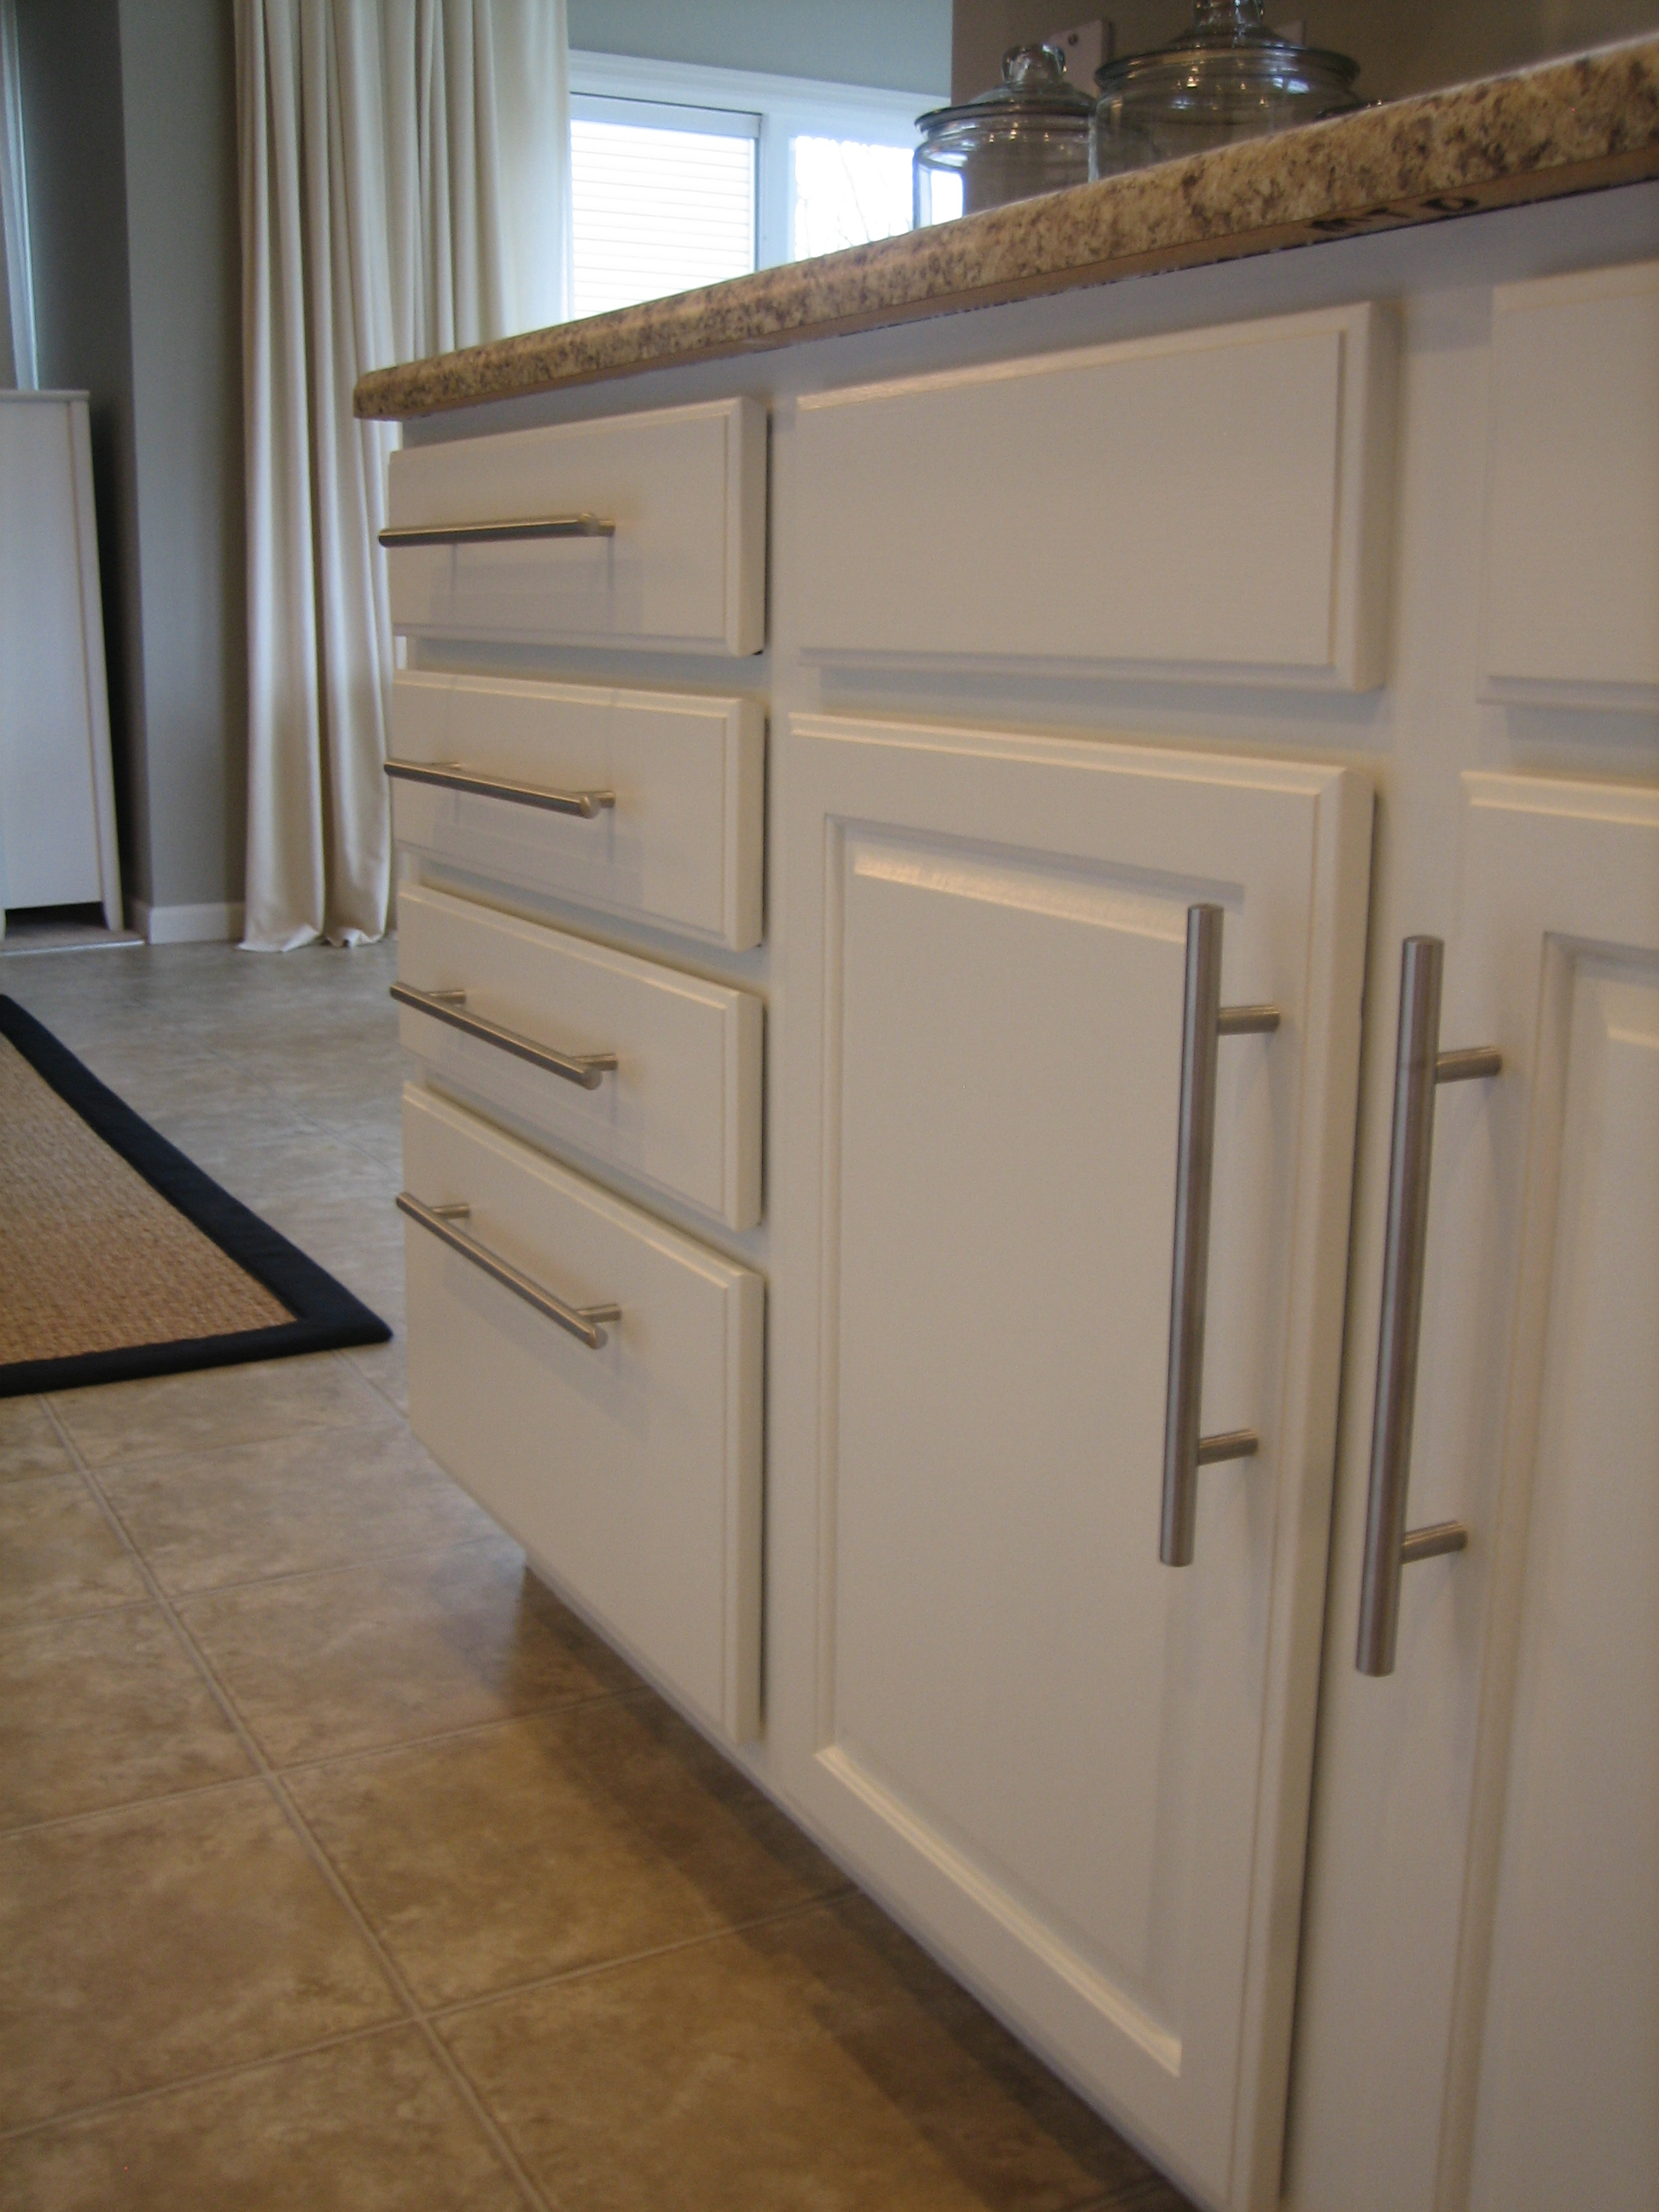 Painted Oak Kitchen Cabinets Painting Kitchen Cabinets White Casual Cottage